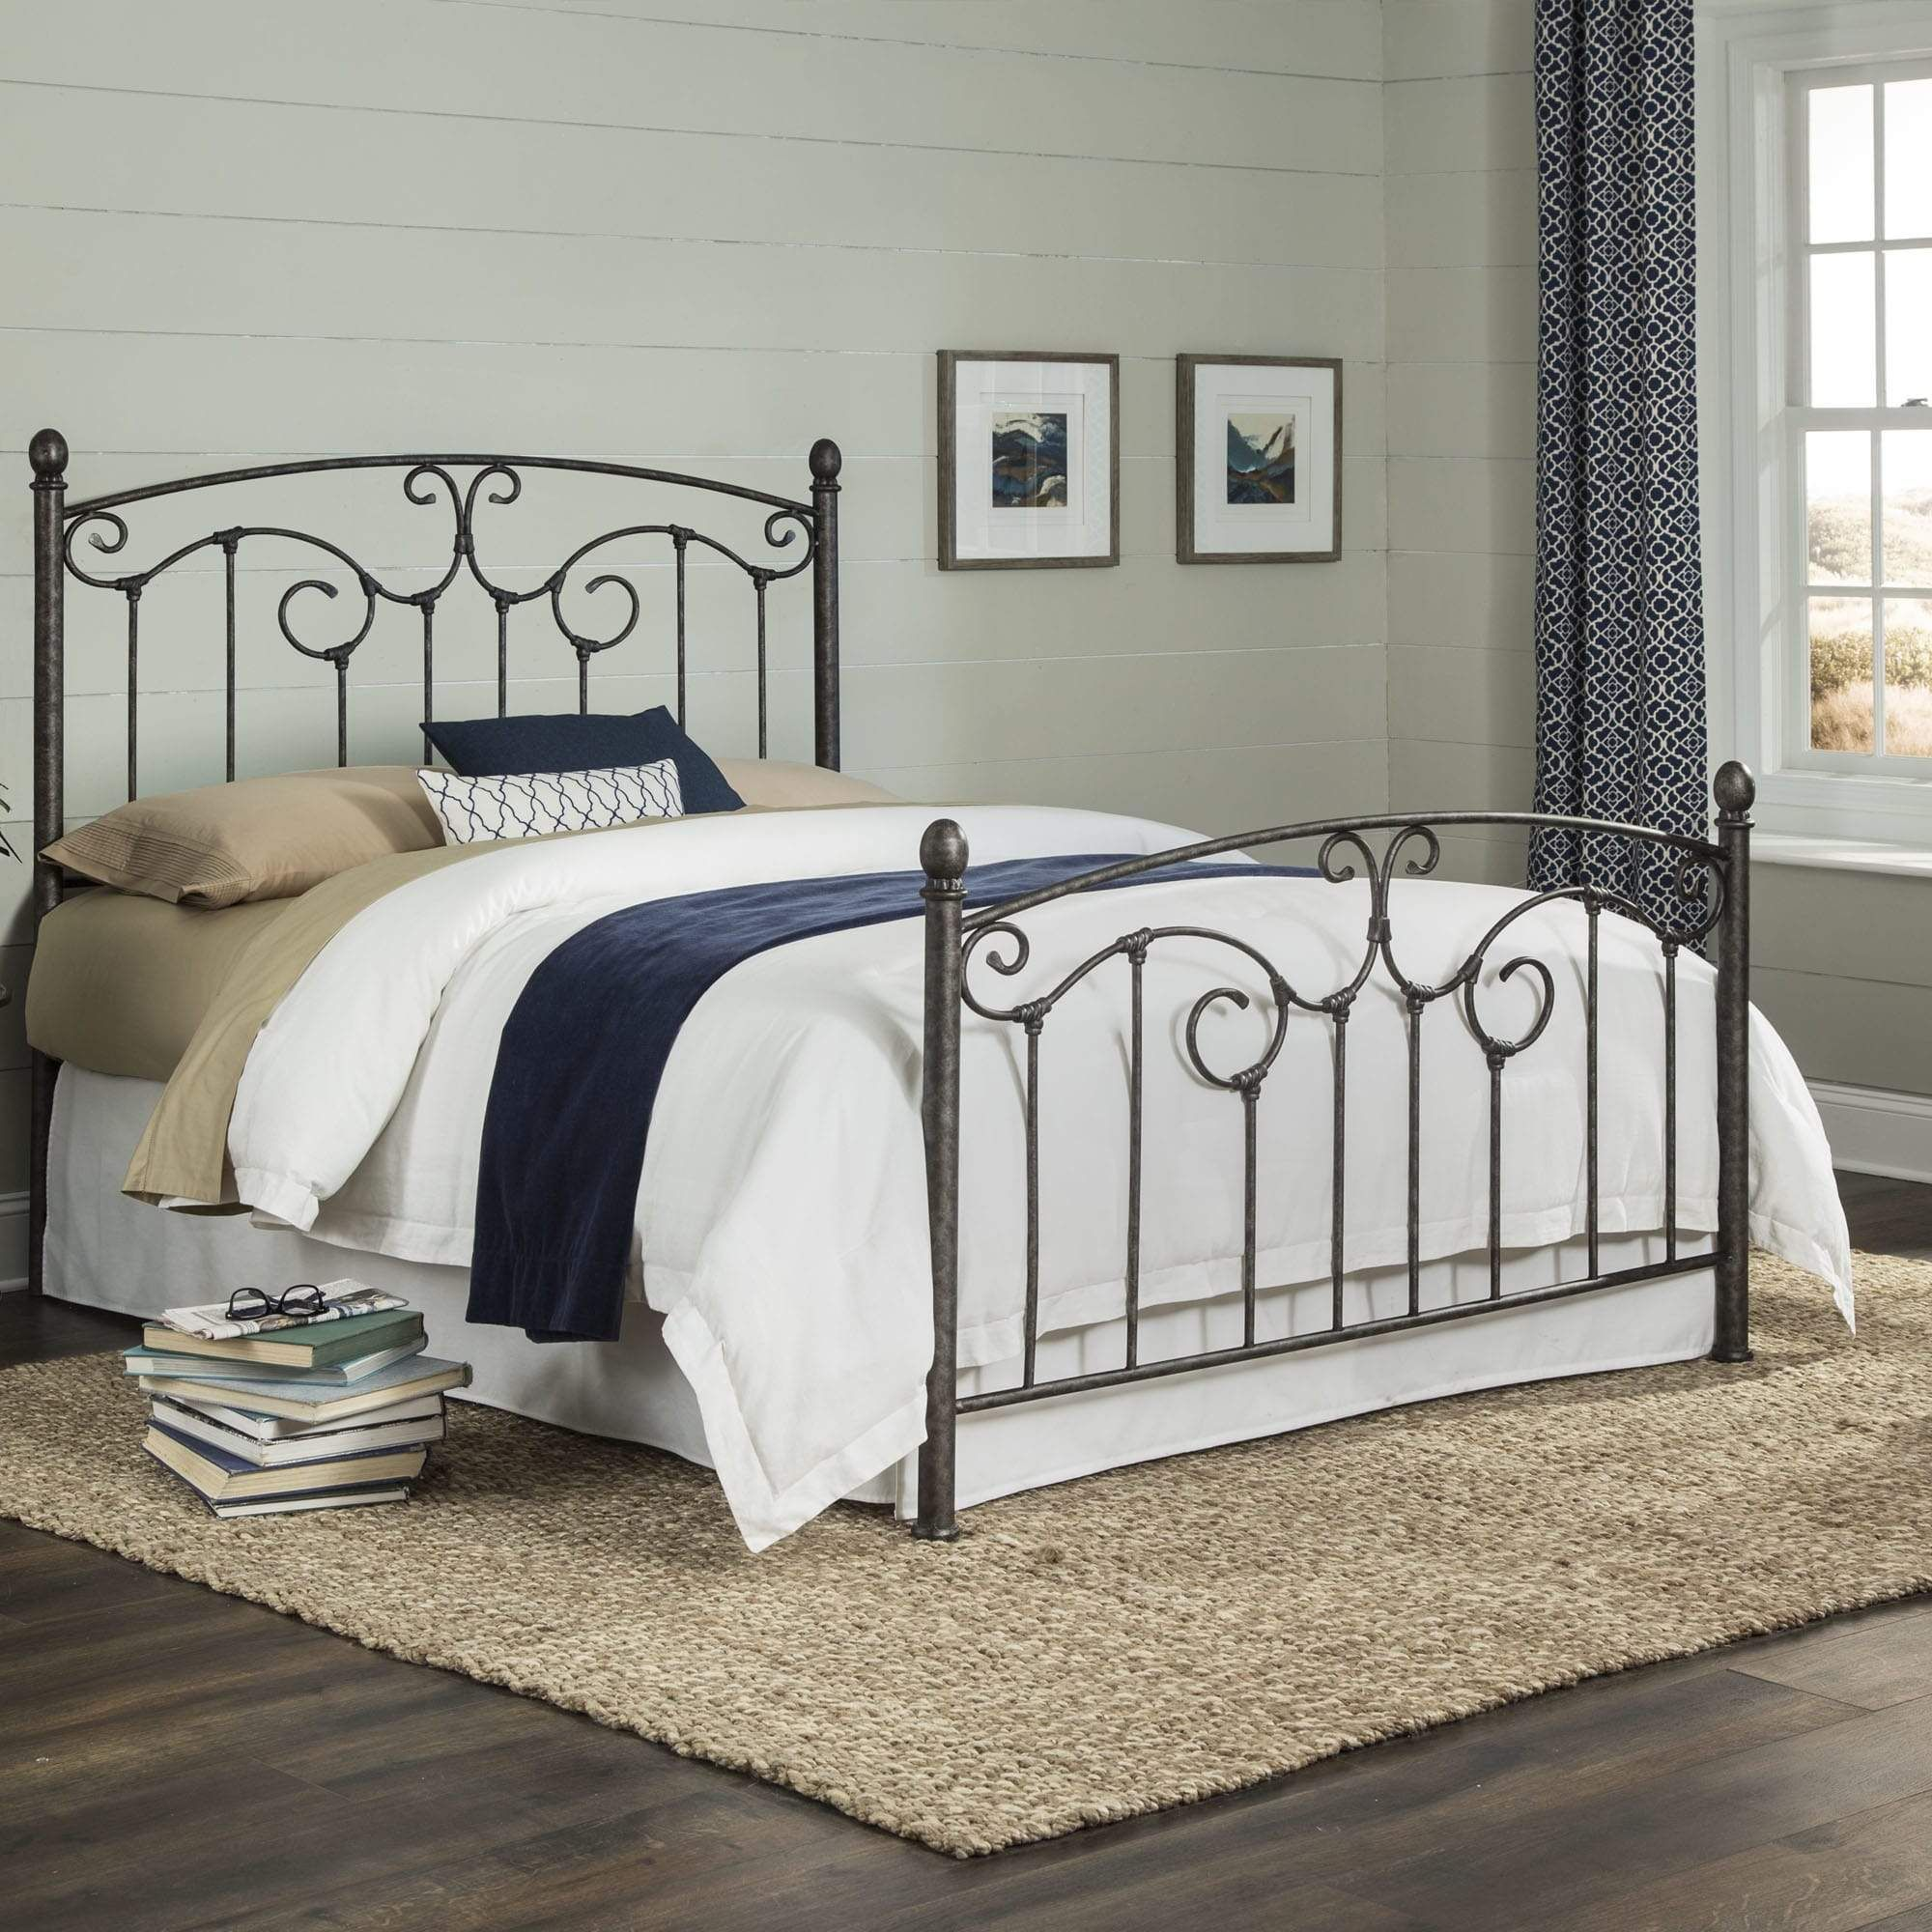 a headboard metal frames full frame and king to classic size platform footboard how with wallpaper storage new headboards bed california build cal